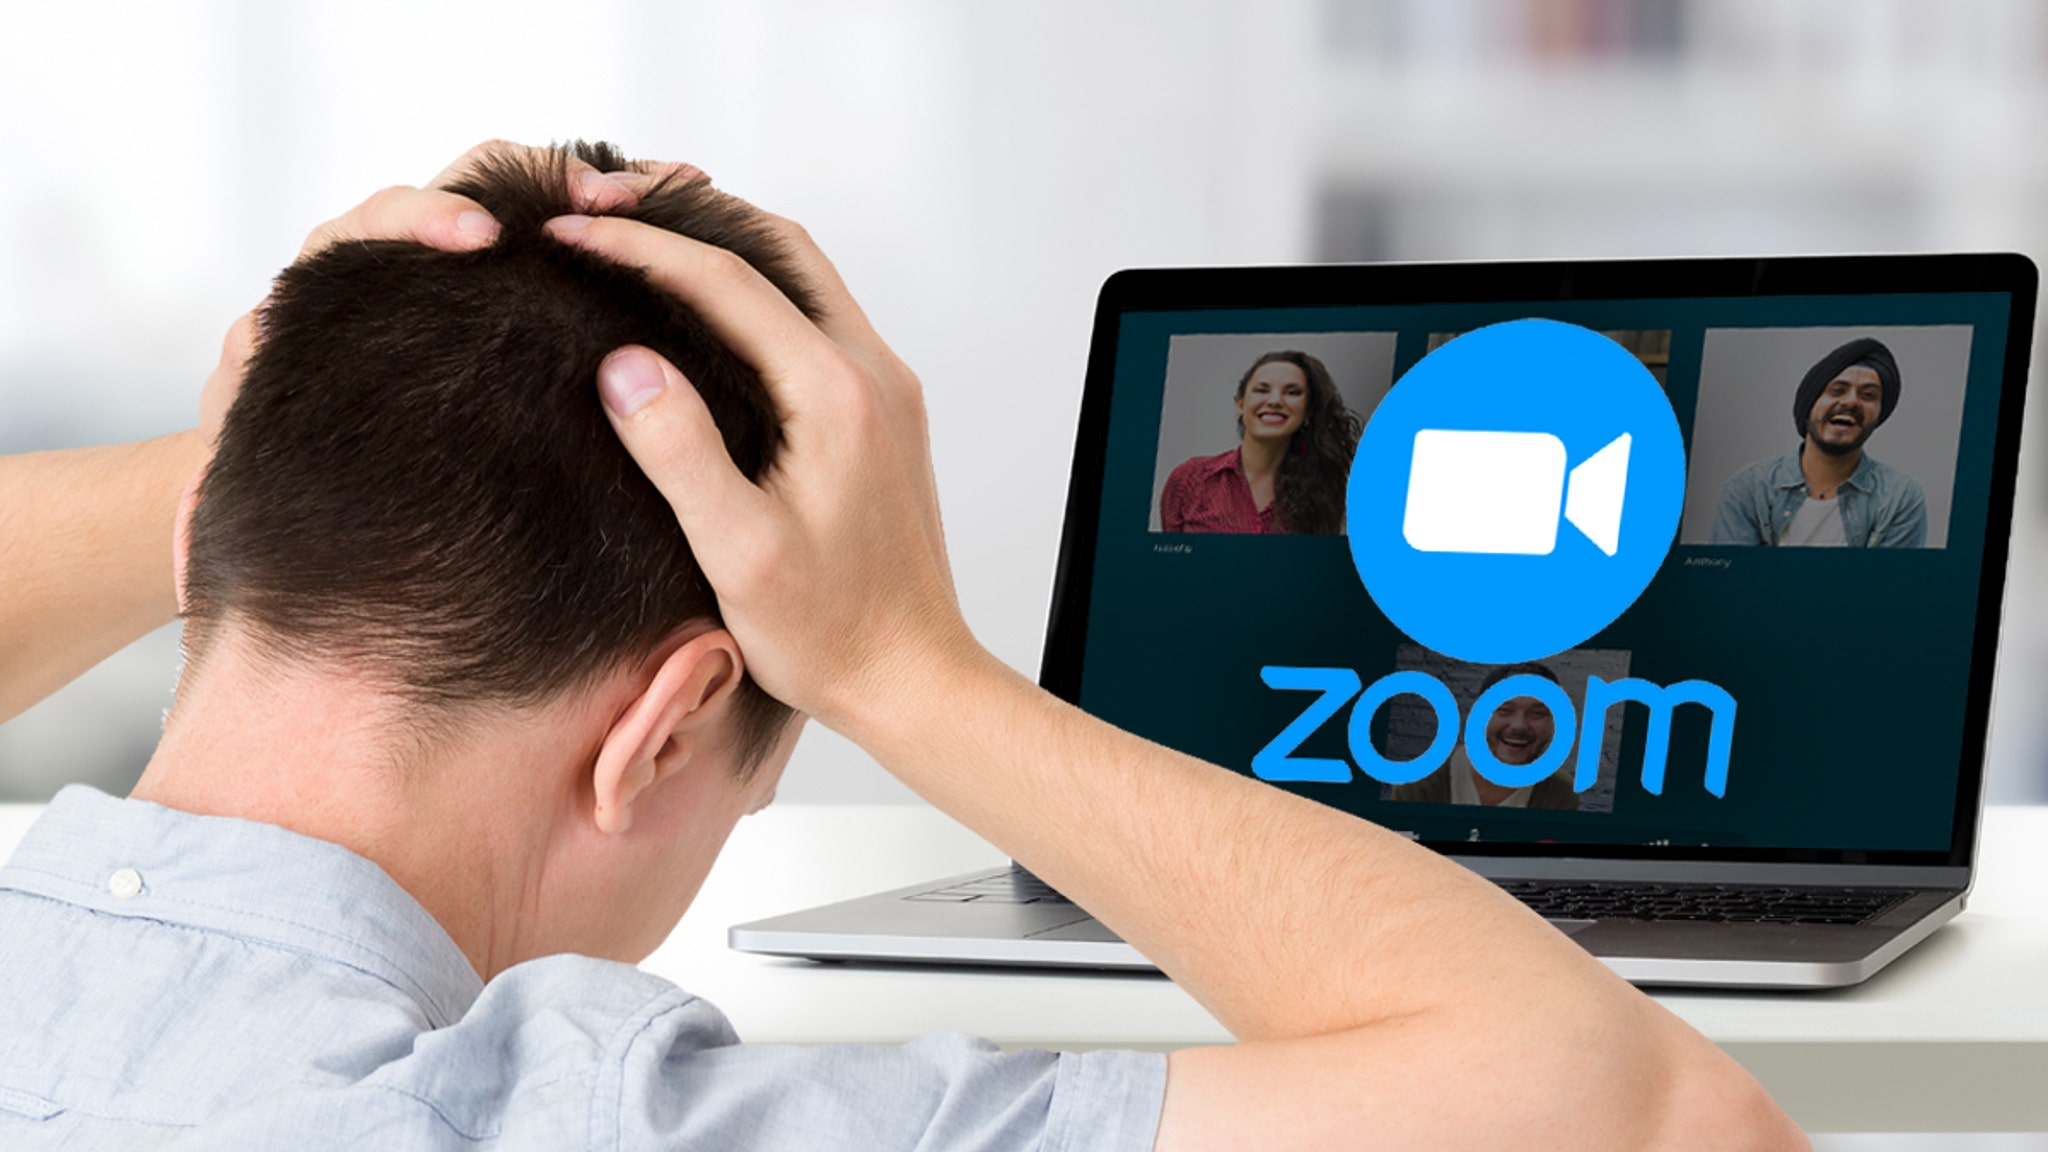 Zoom Sued Over 'Zoom Bombing,' Privacy and Security Issues